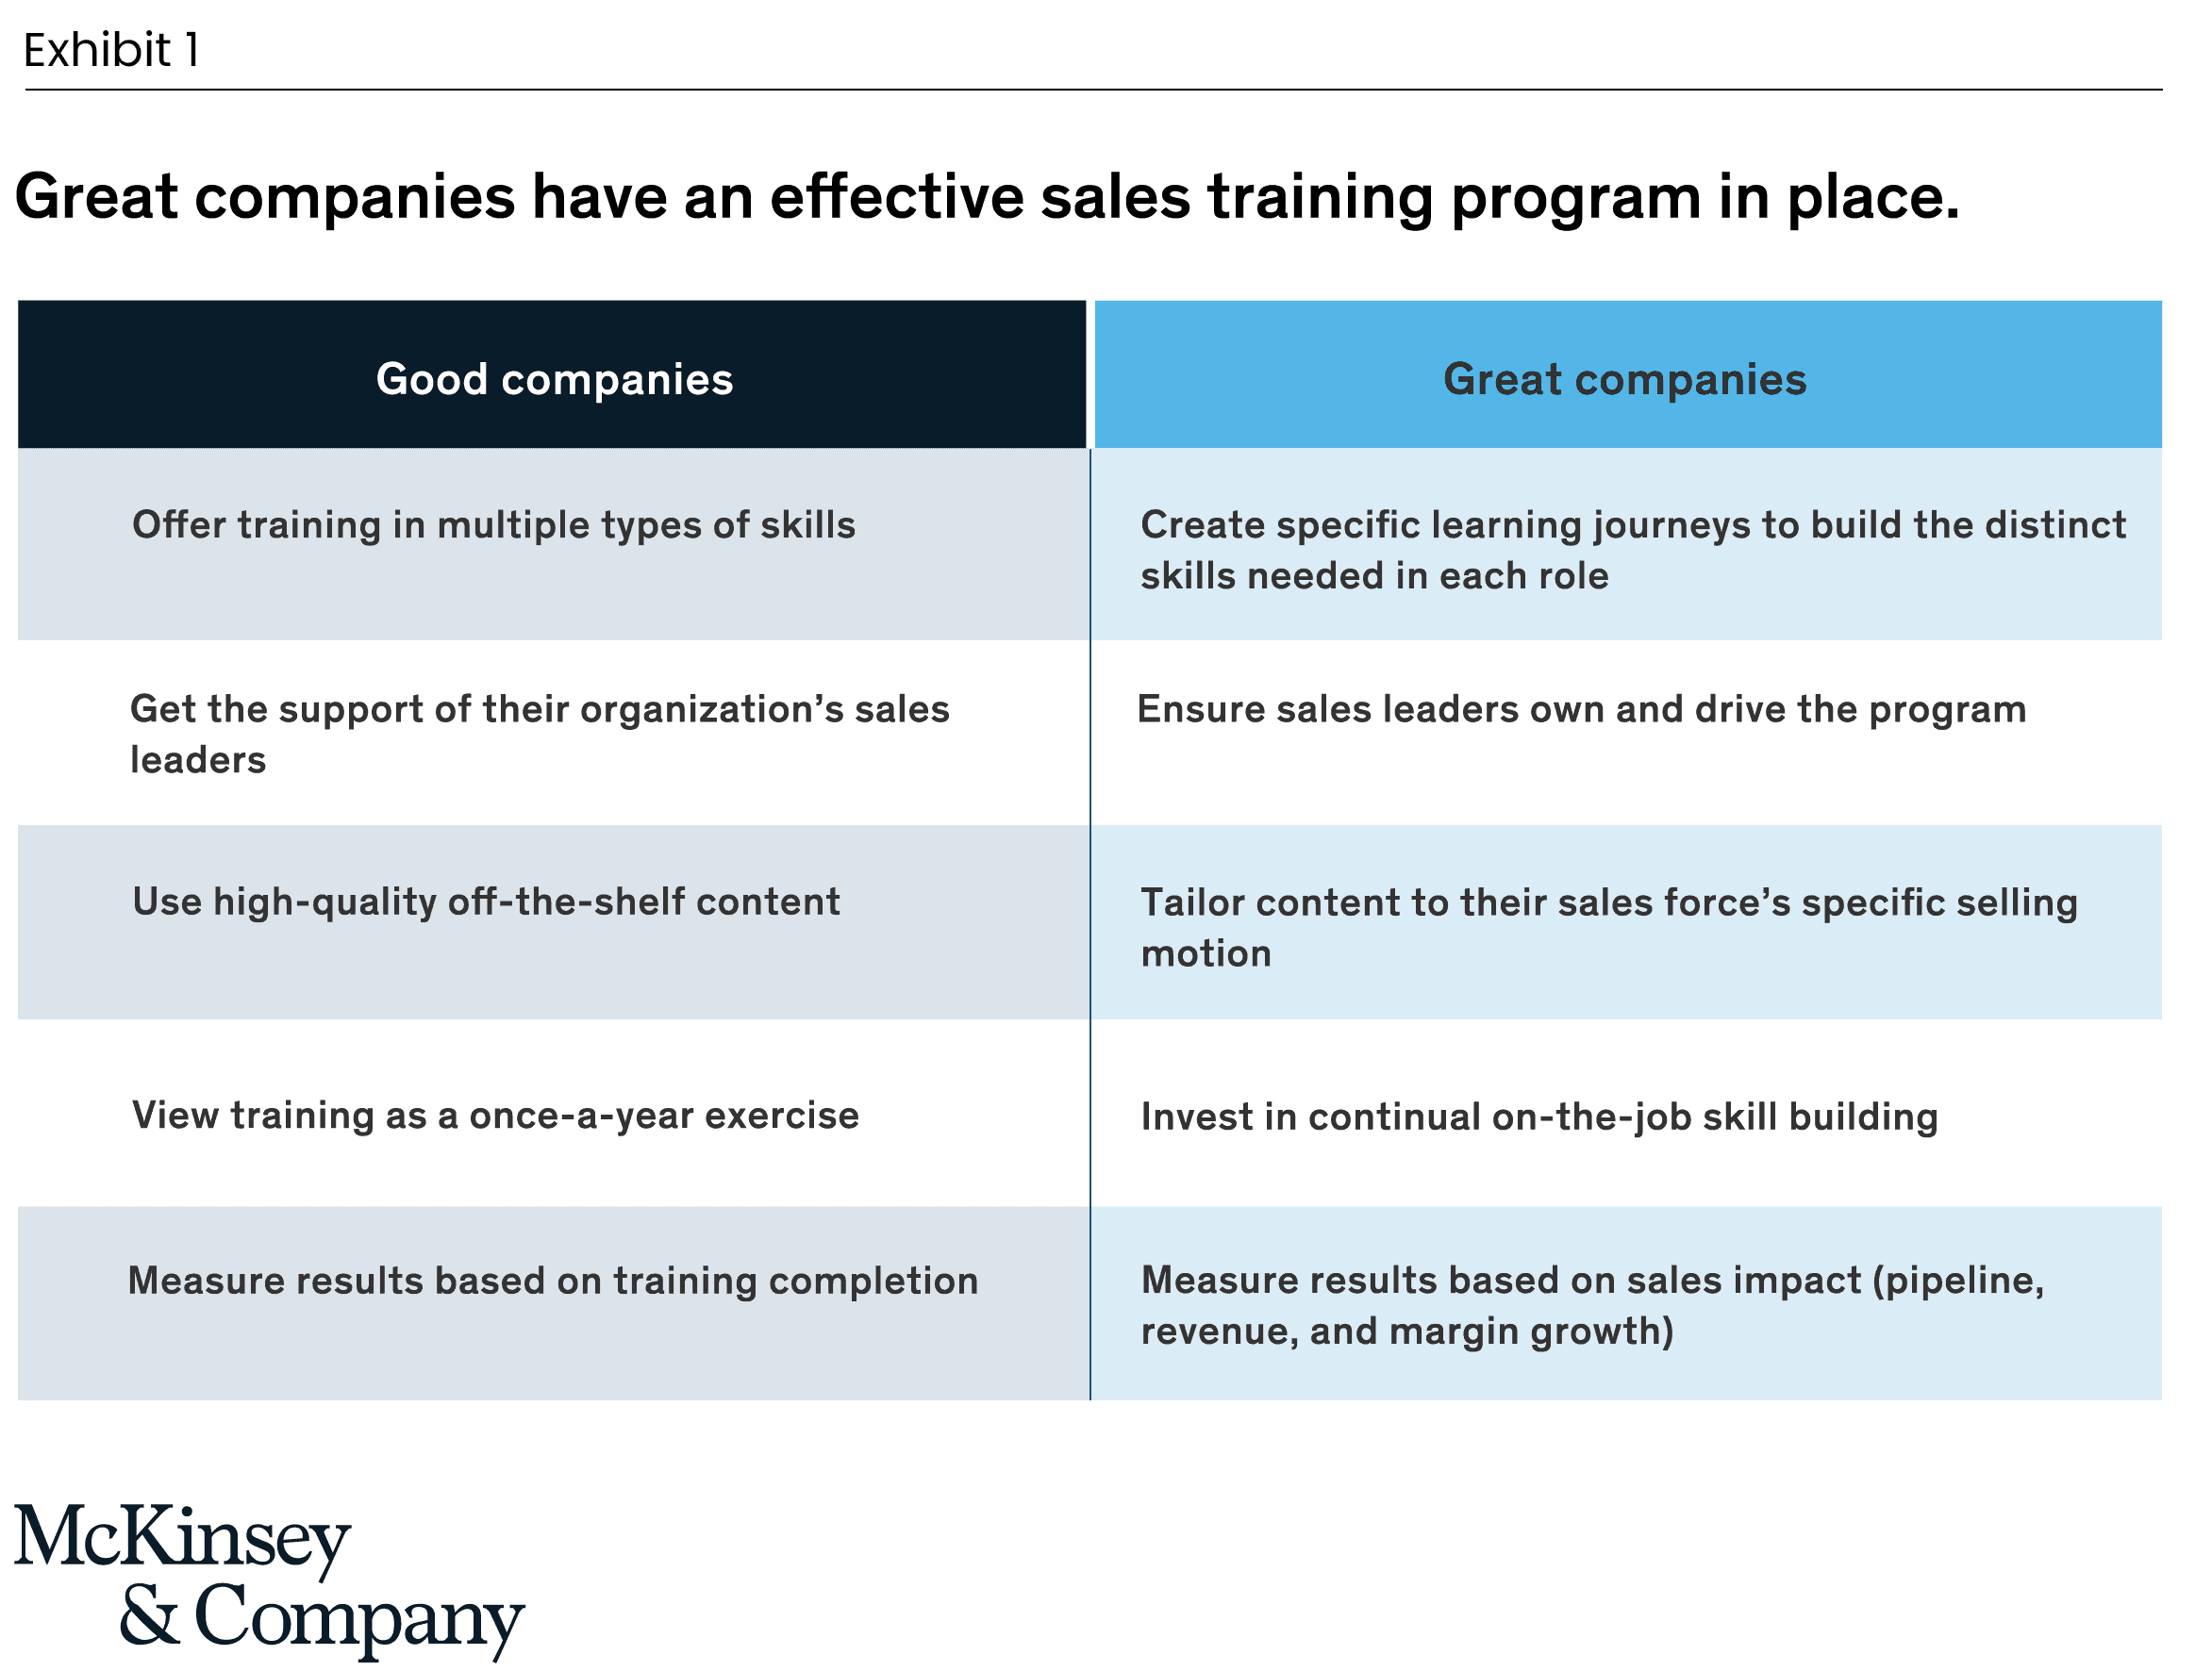 Side-by-side comparison chart showing a good company's vs a great company's sales training programs